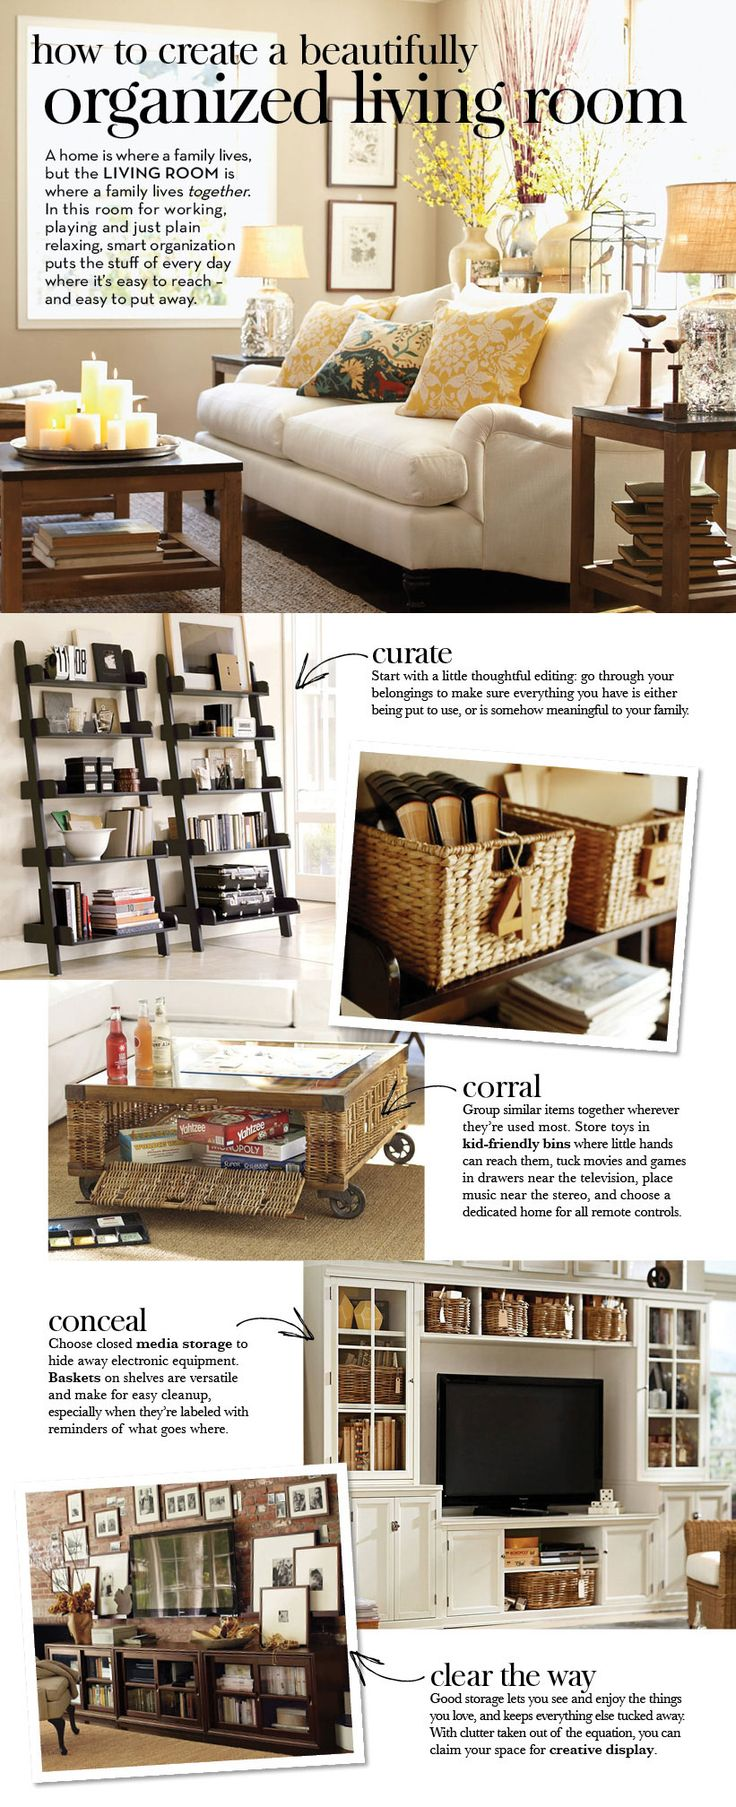 How to Create a Beautifully Organized Living Room   Pottery Barn